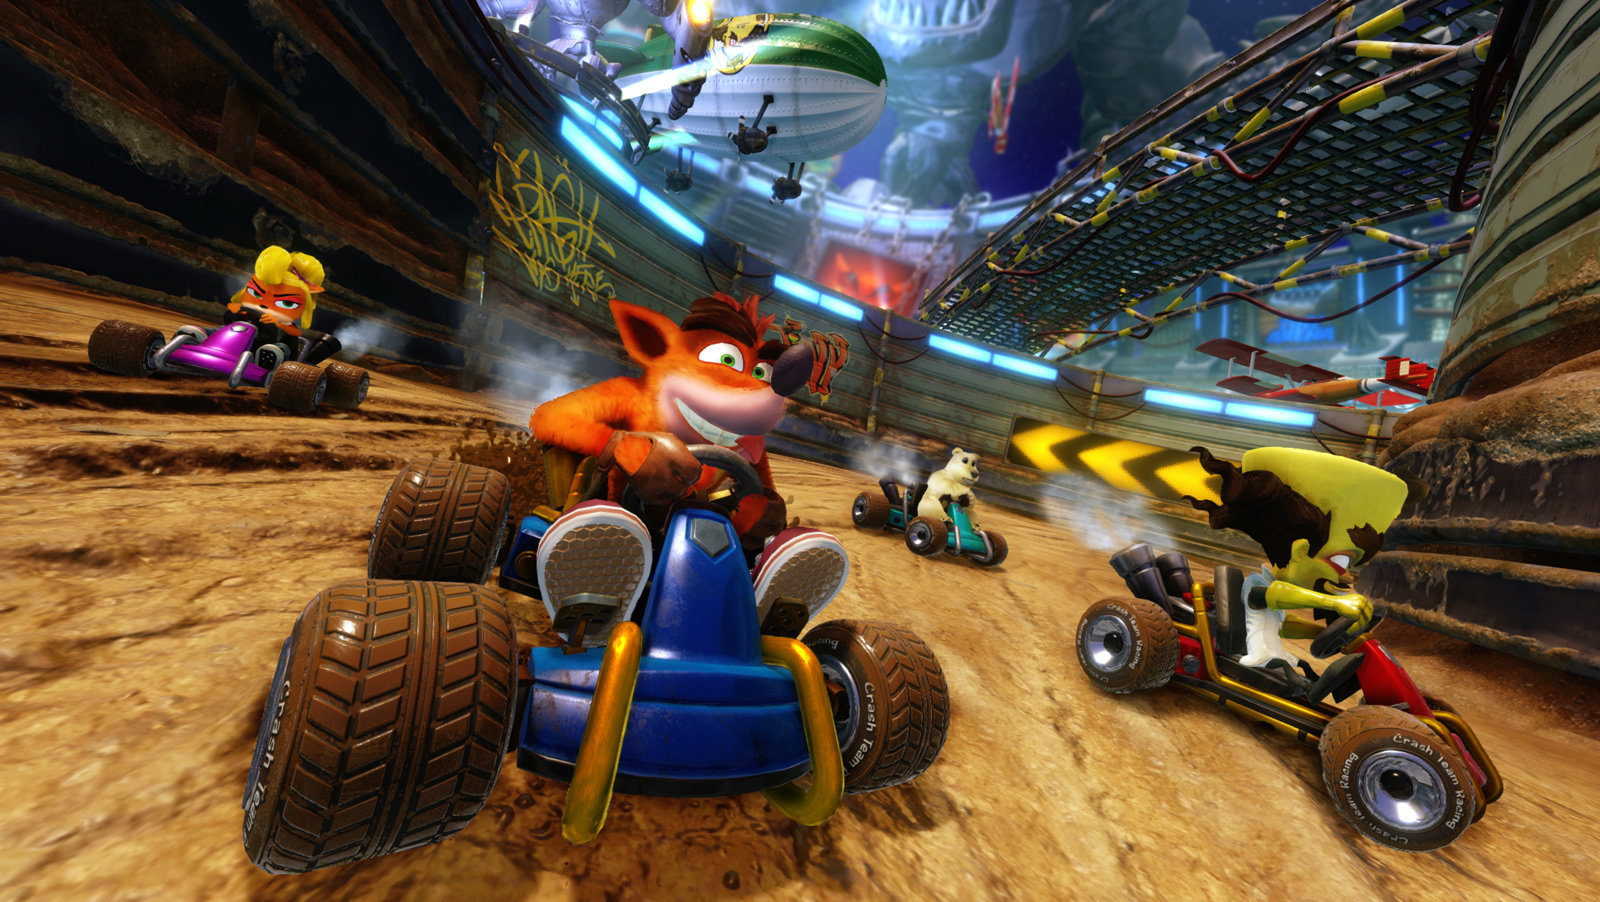 Crash Team Racing Nitro-Fueled | Versão remasterizada de Crash Team Racing é anunciado